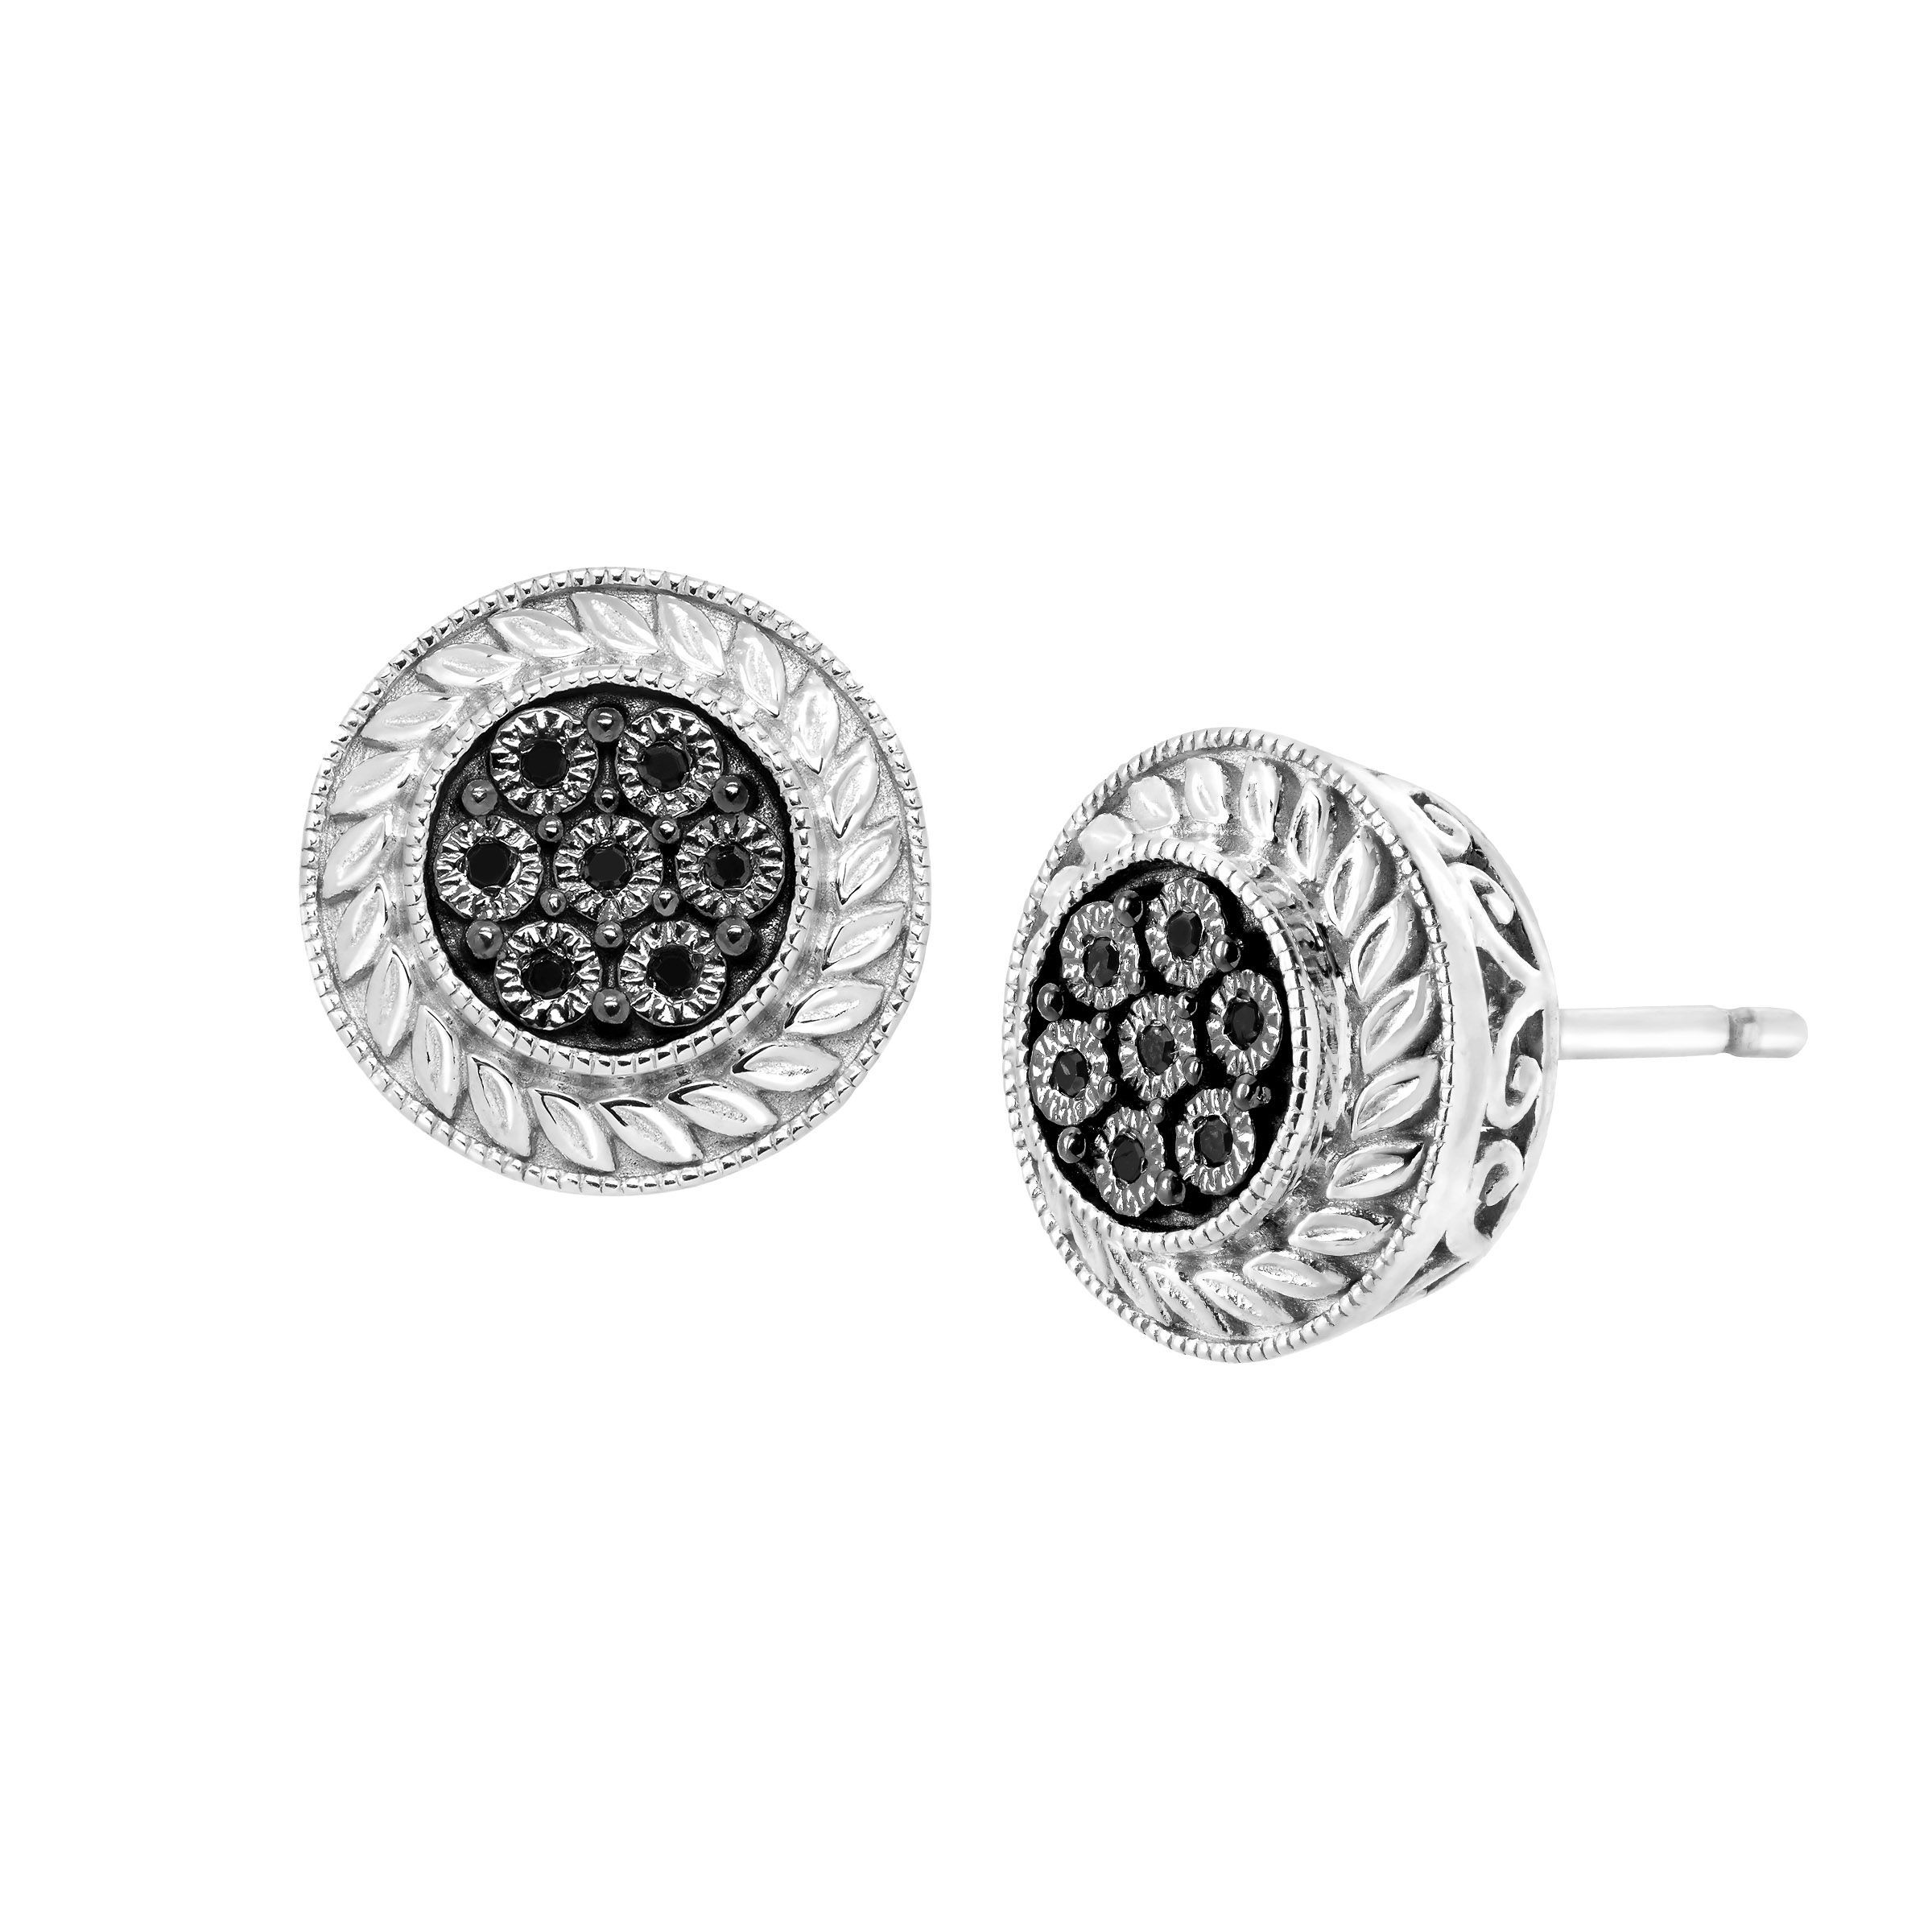 Halo Stud Earrings With Black Diamonds In Sterling Silver